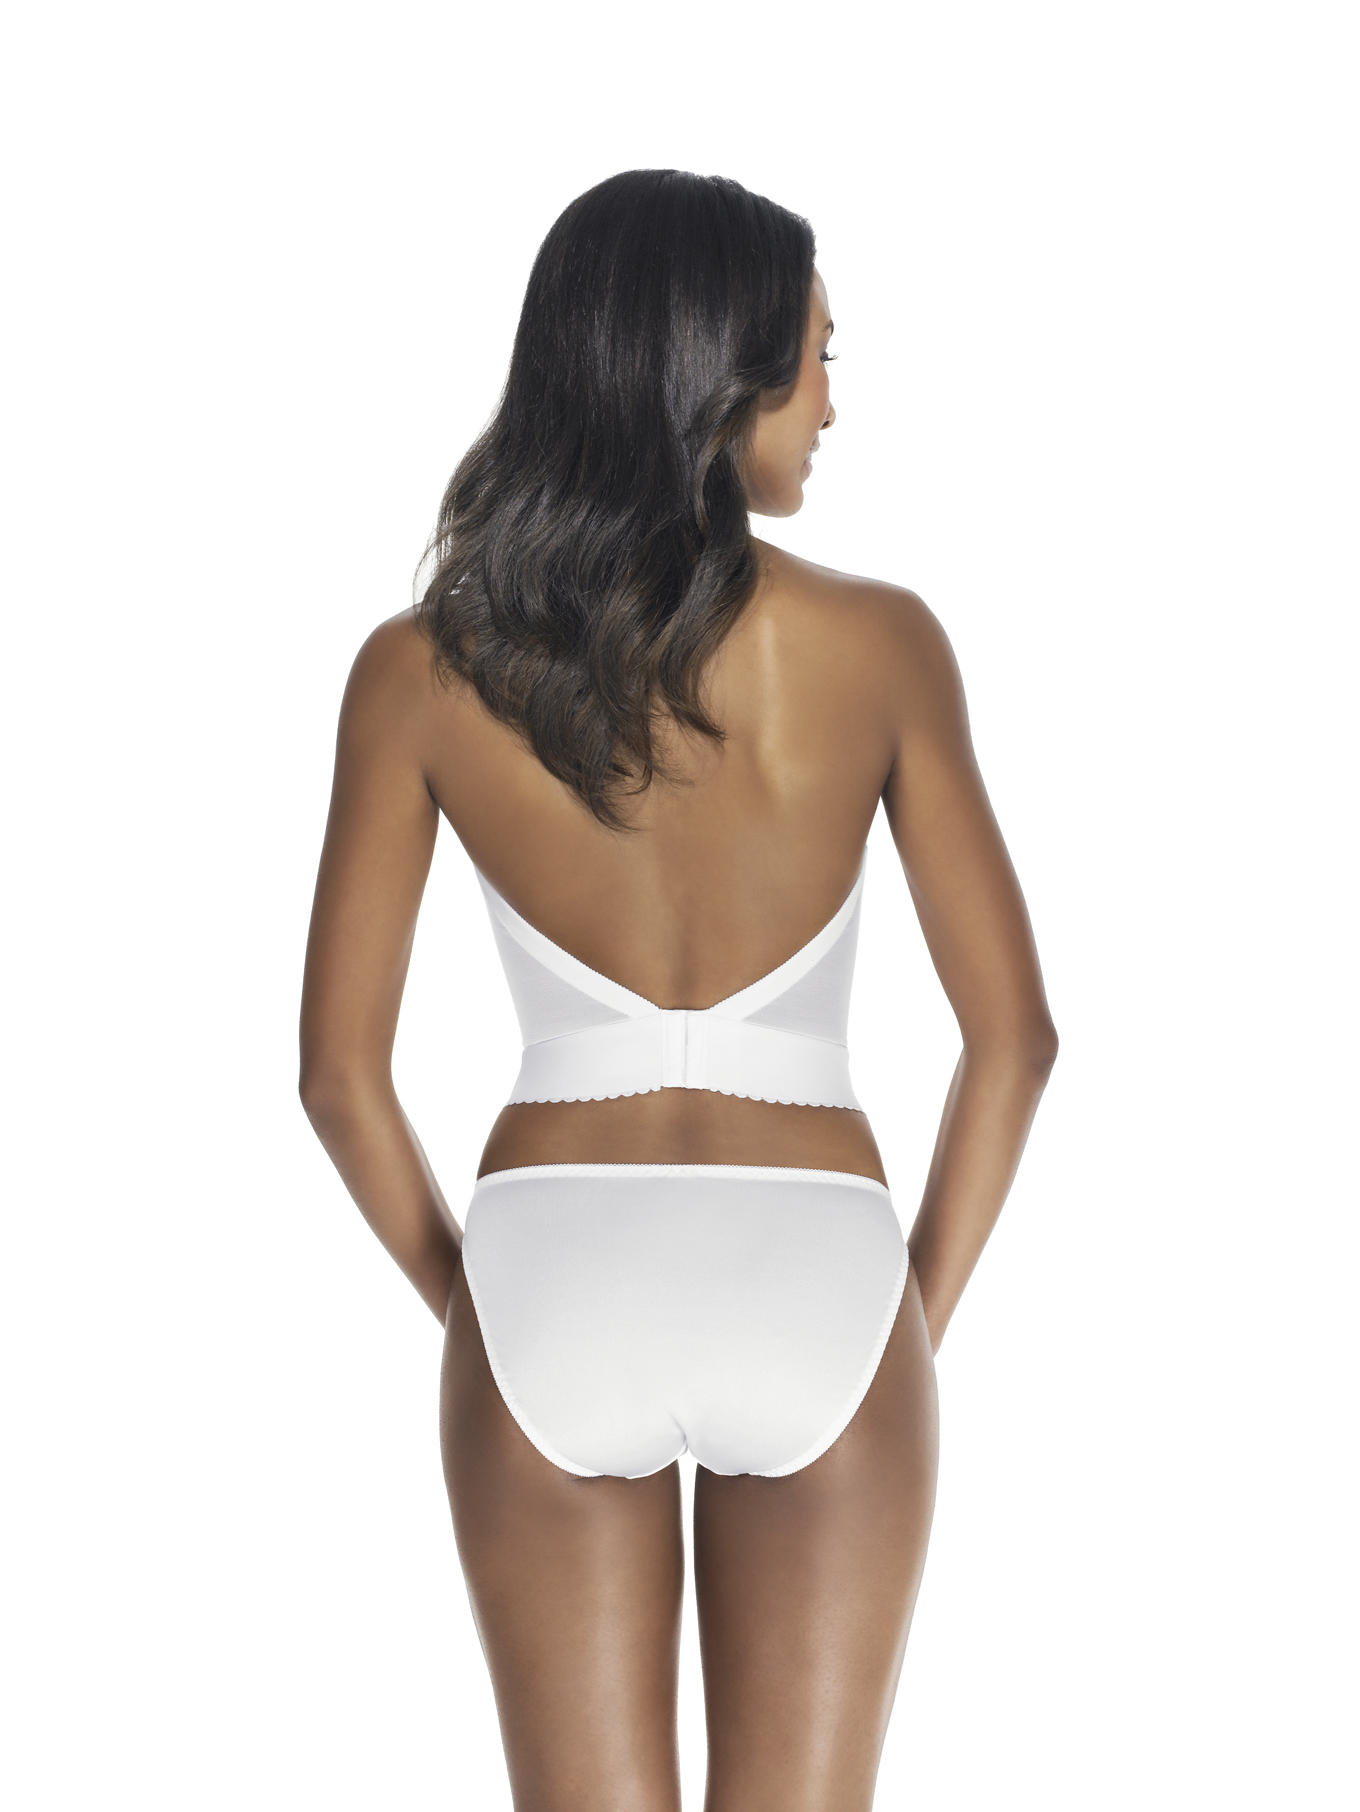 Backless longline Bustier rear